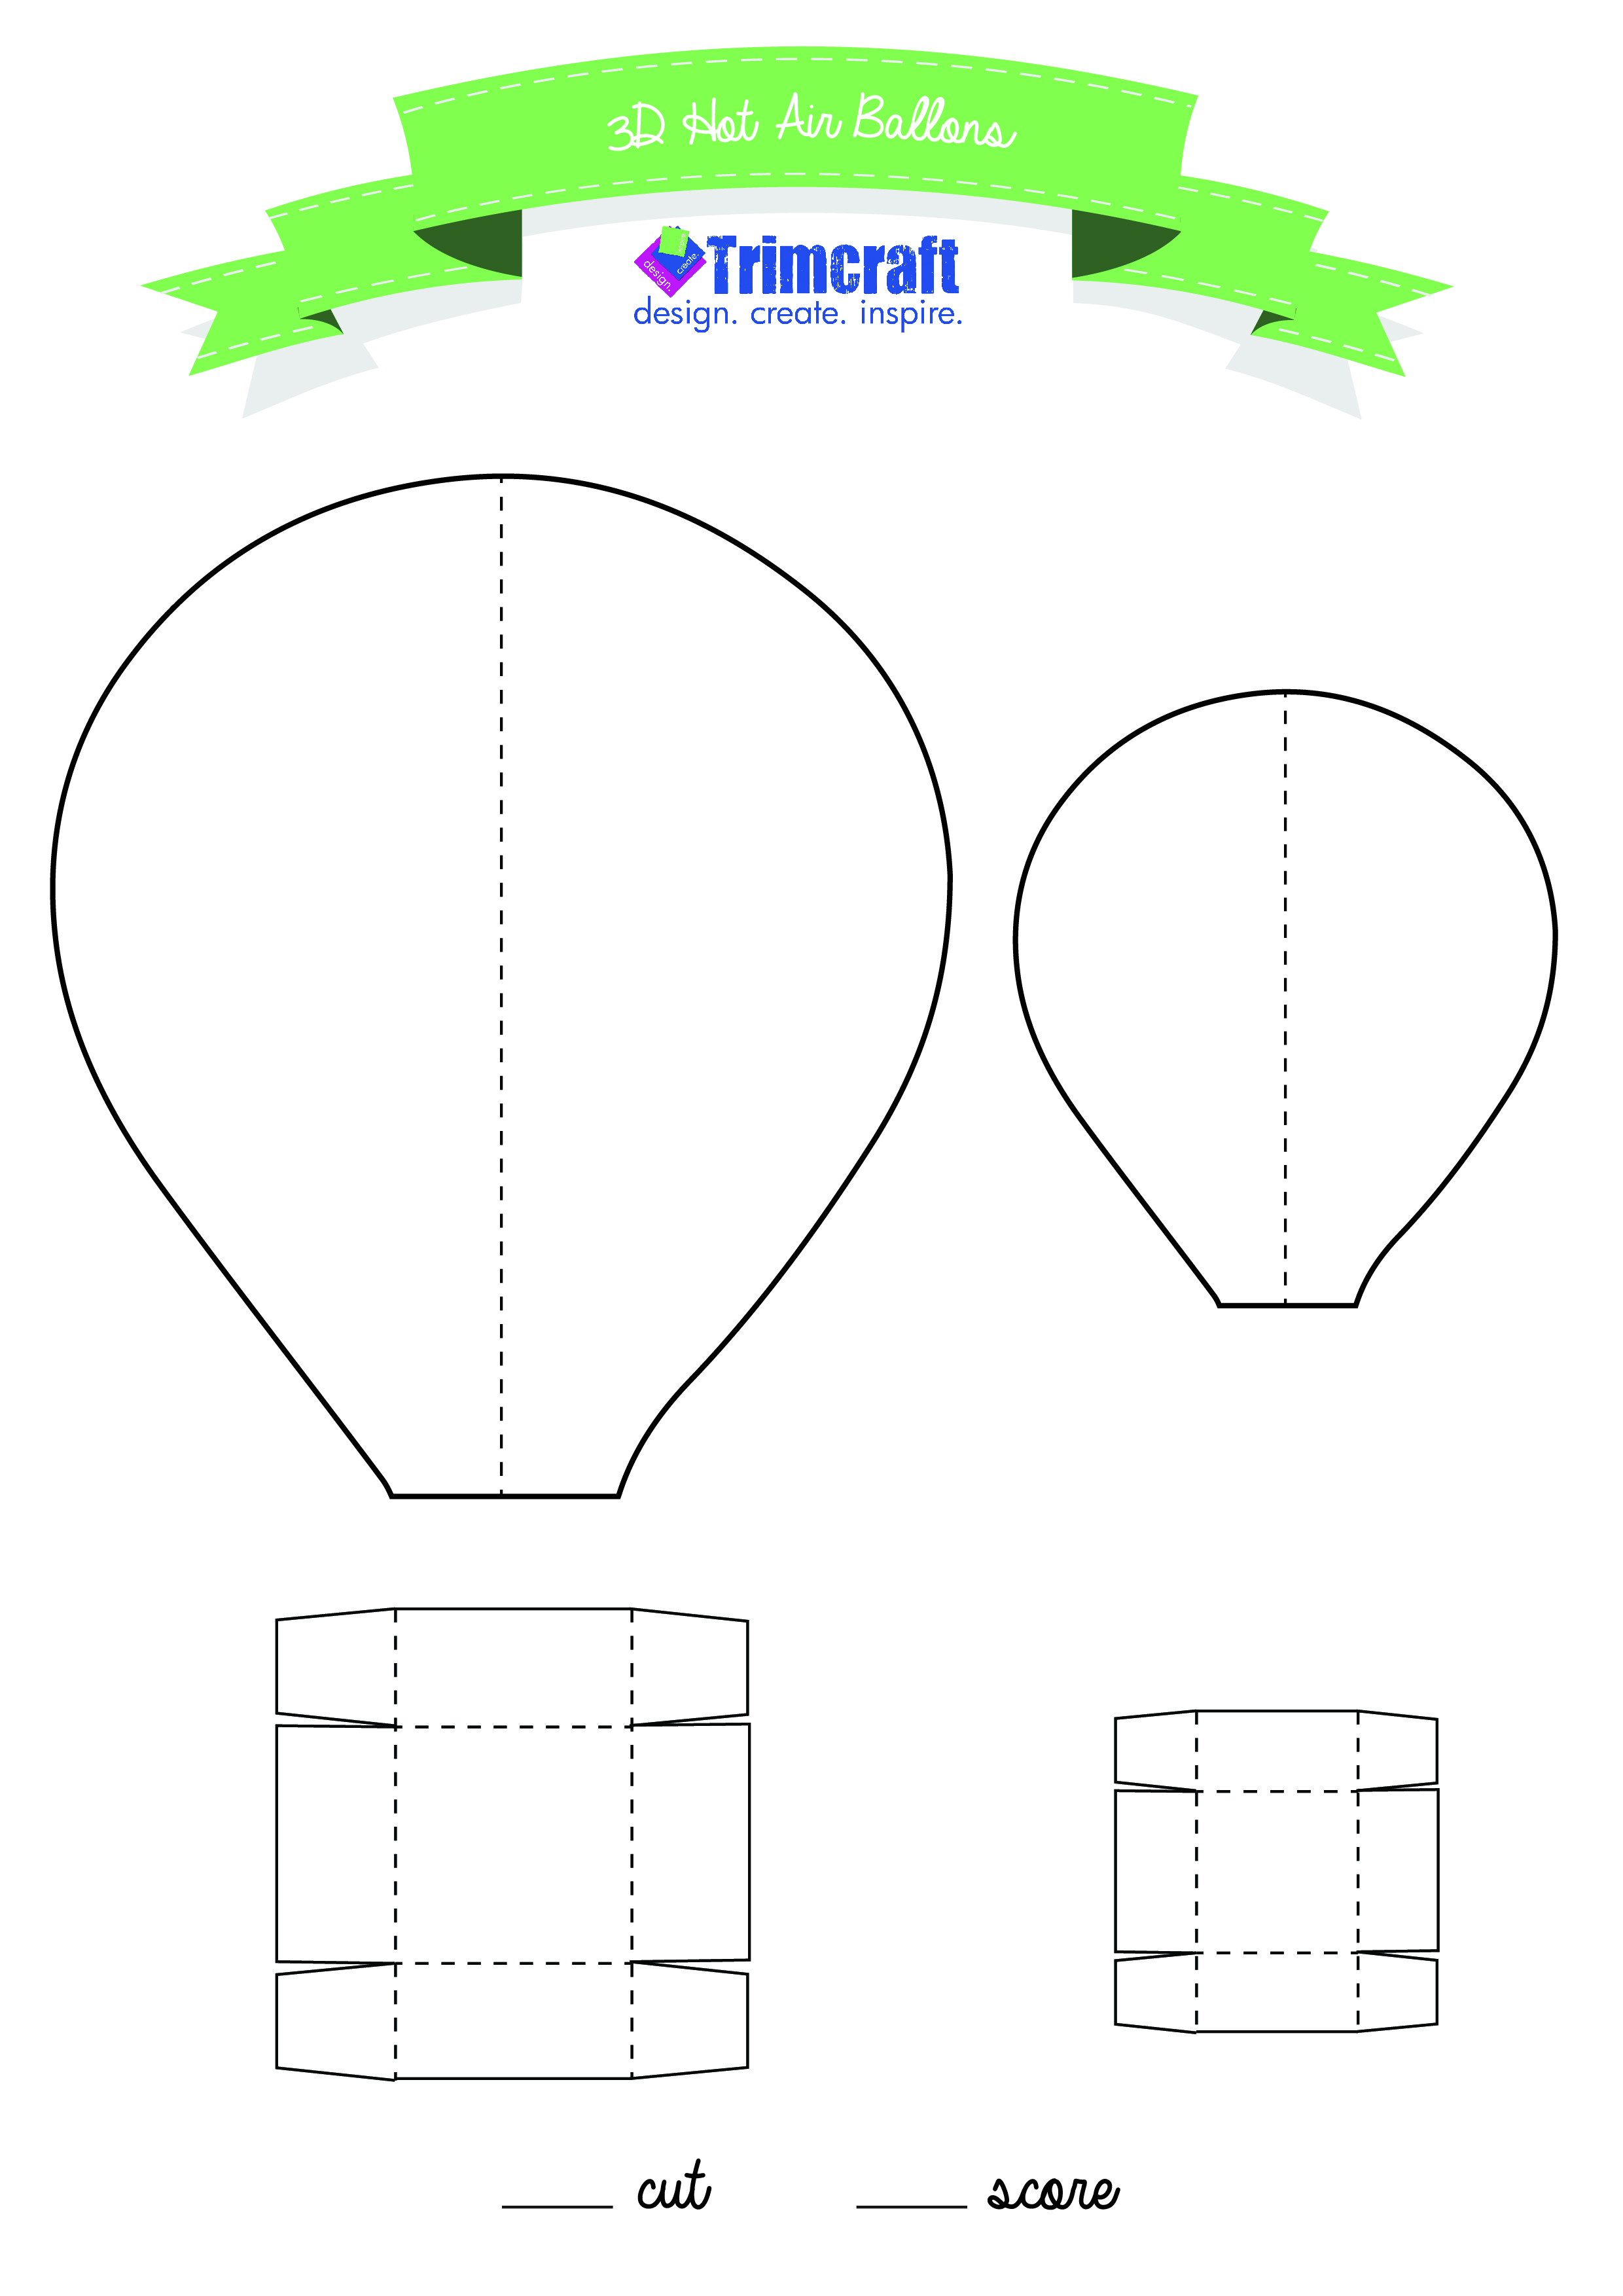 image about Hot Air Balloon Pattern Printable called 3D Sizzling Air Balloons With Printable Template The Craft Website